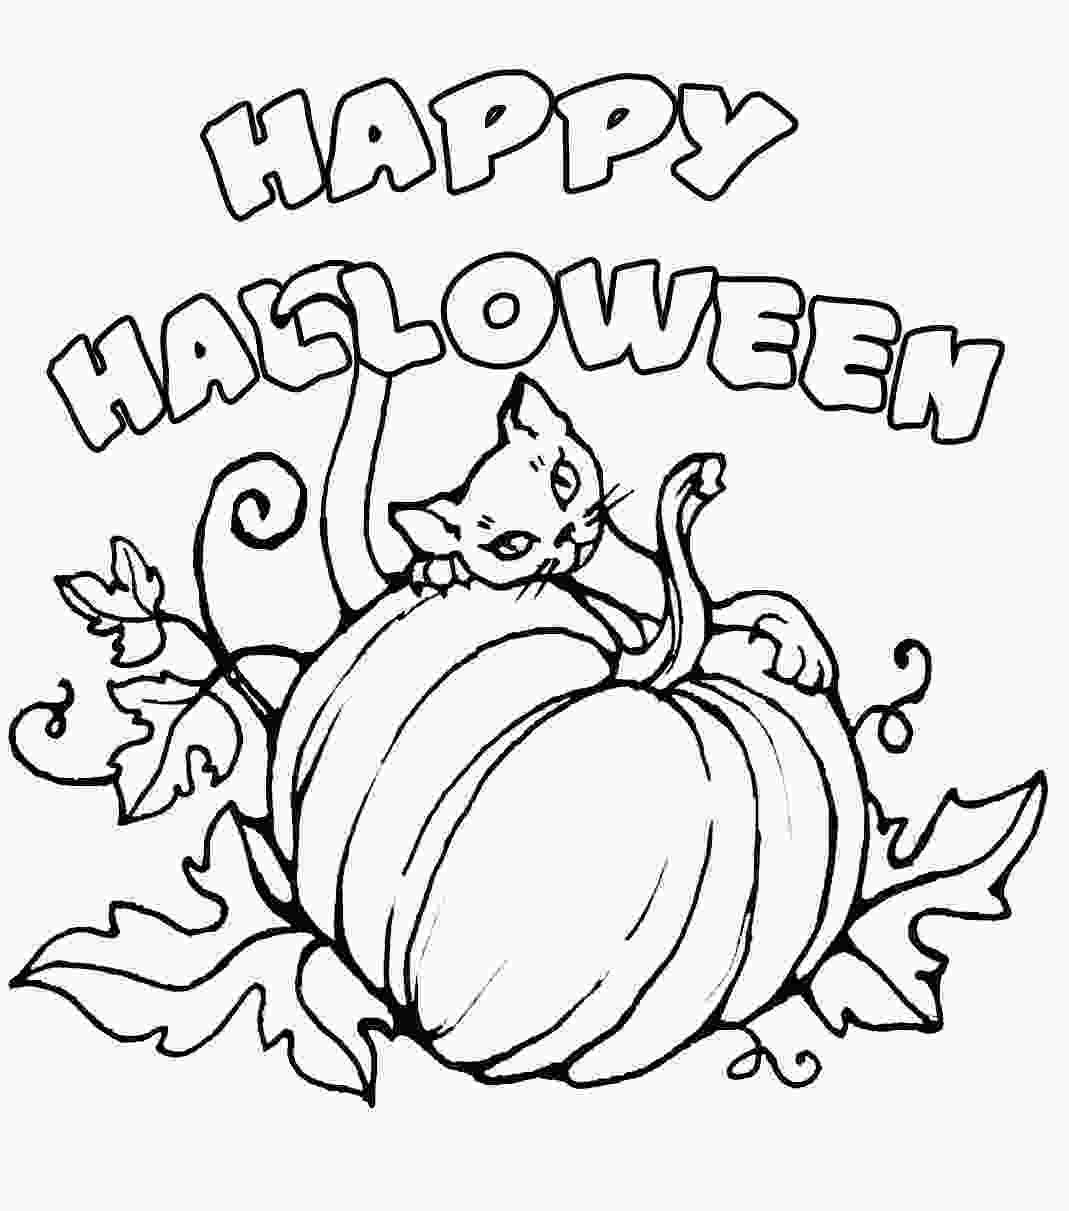 coloring sheet halloween best halloween coloring pages 2017 world of makeup and